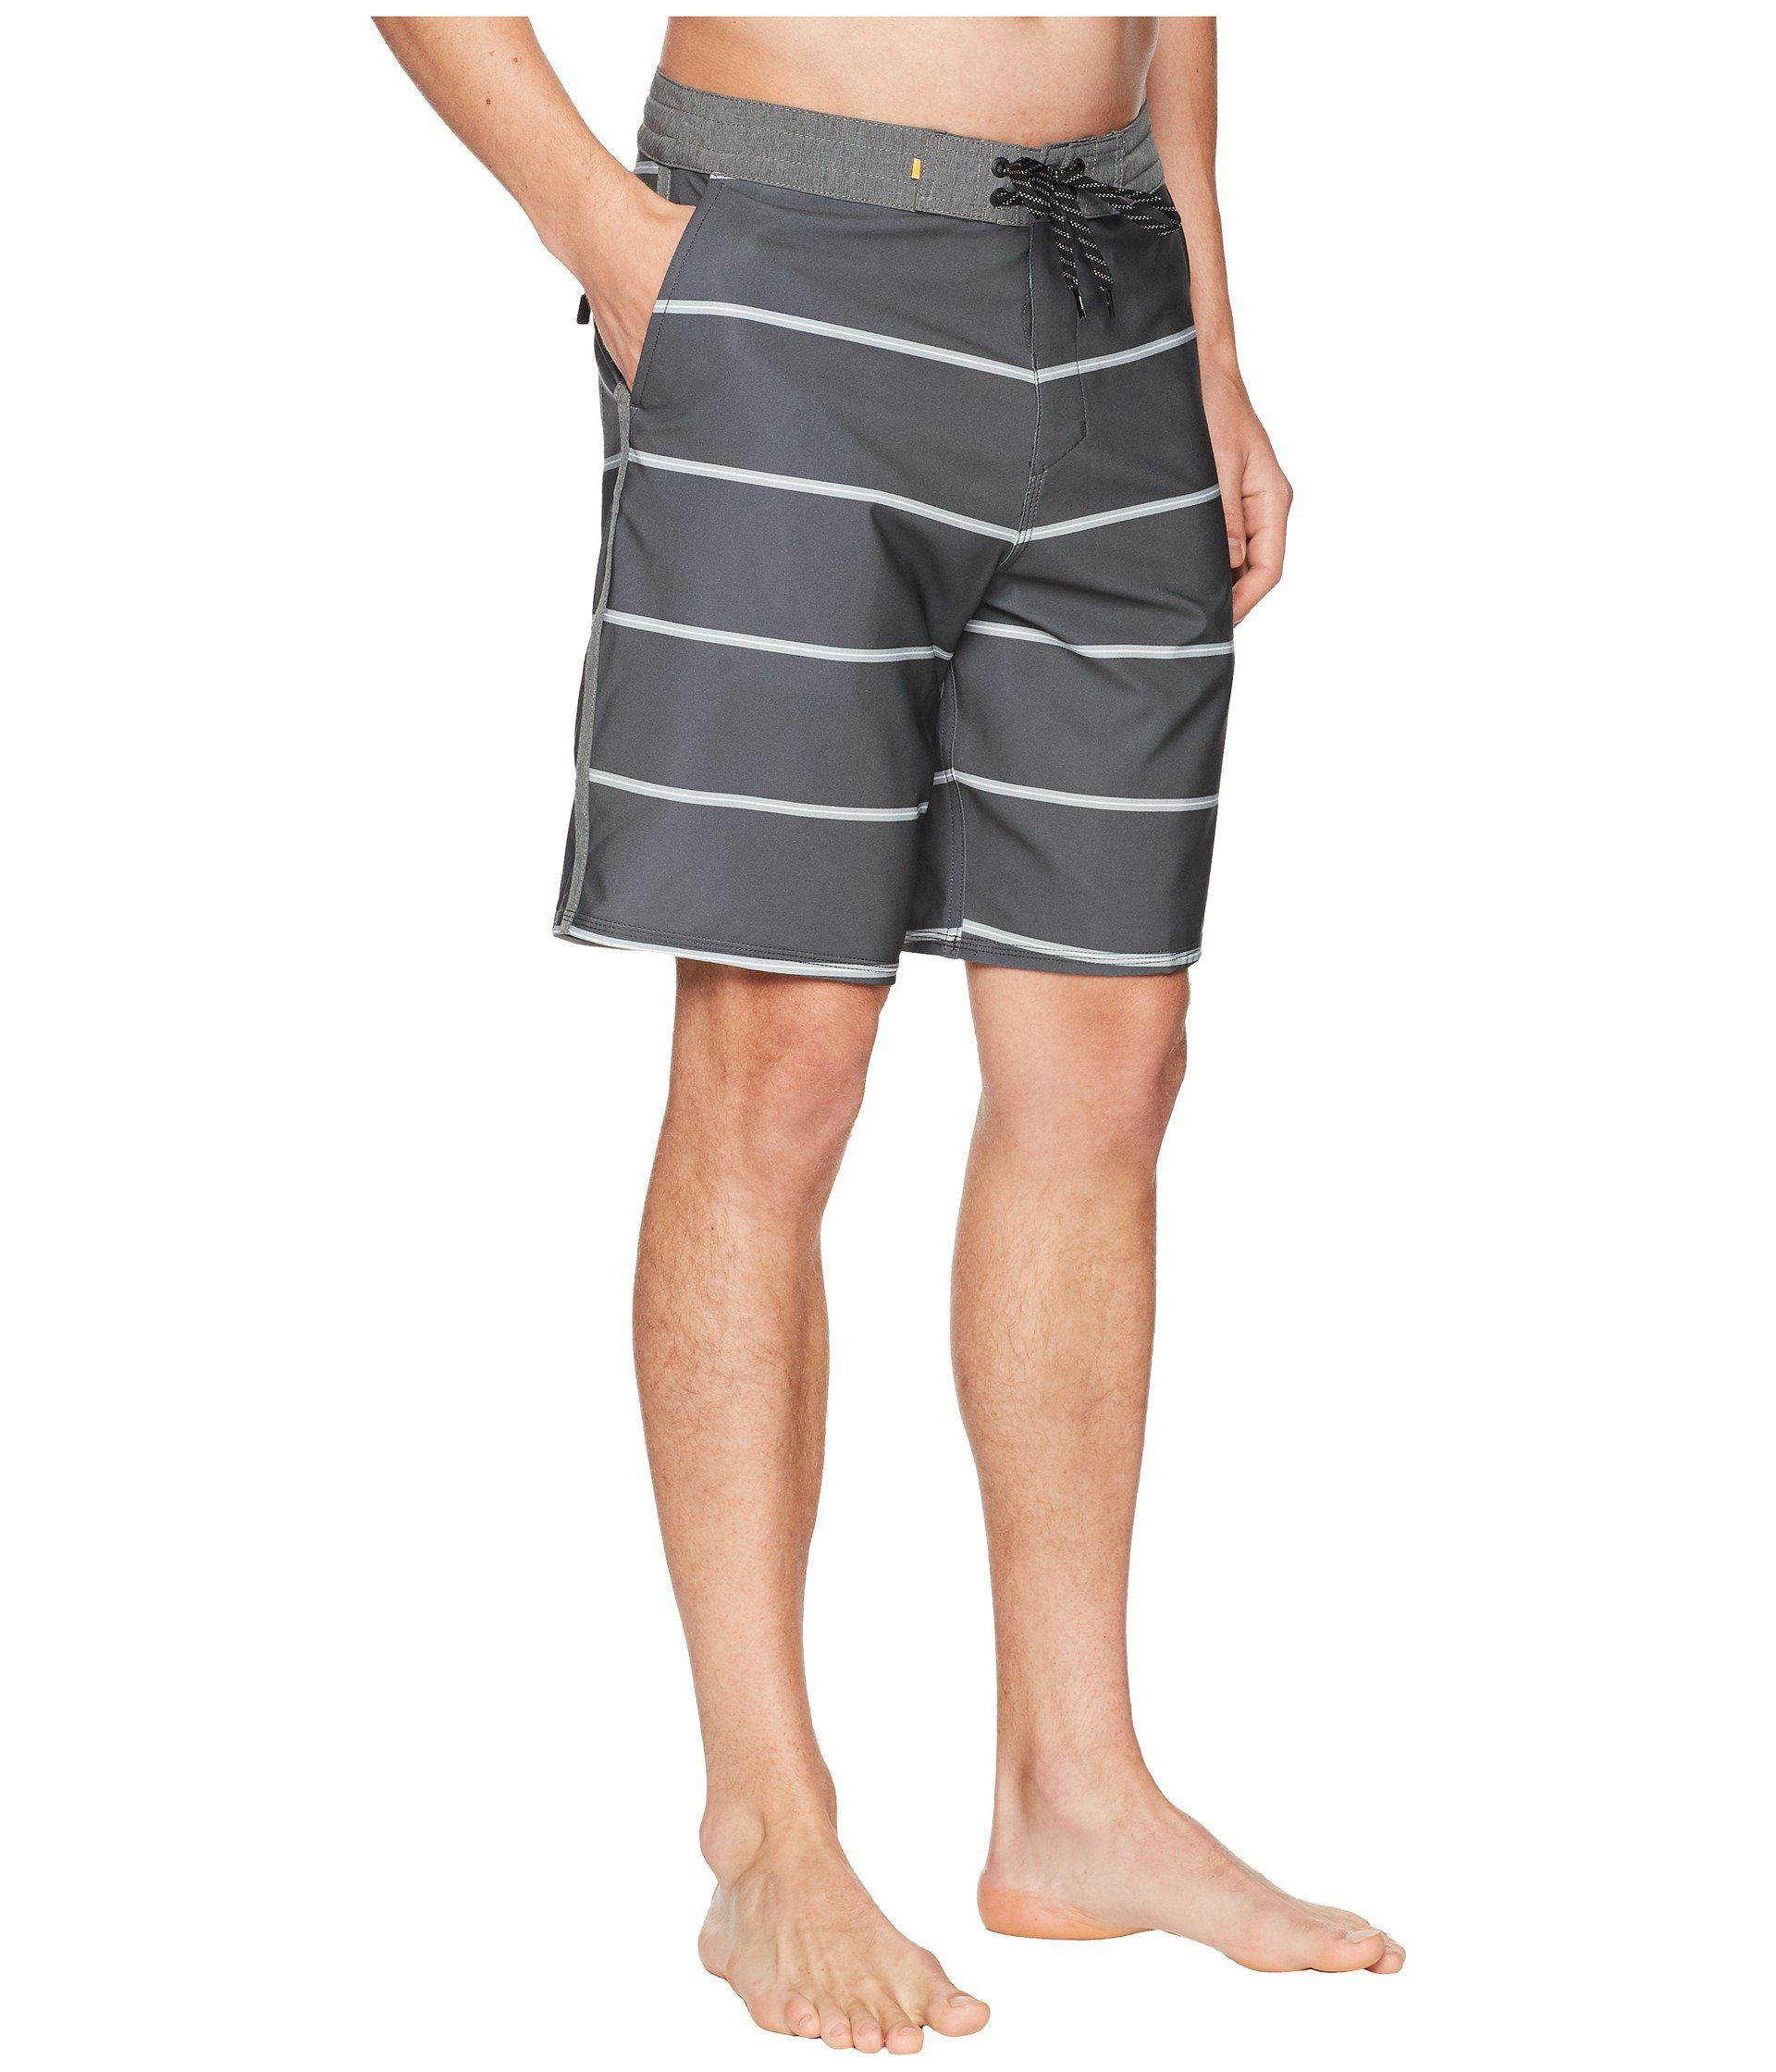 08e7cab09d Quiksilver - Gray Liberty Overboard Boardshorts for Men - Lyst. View  fullscreen